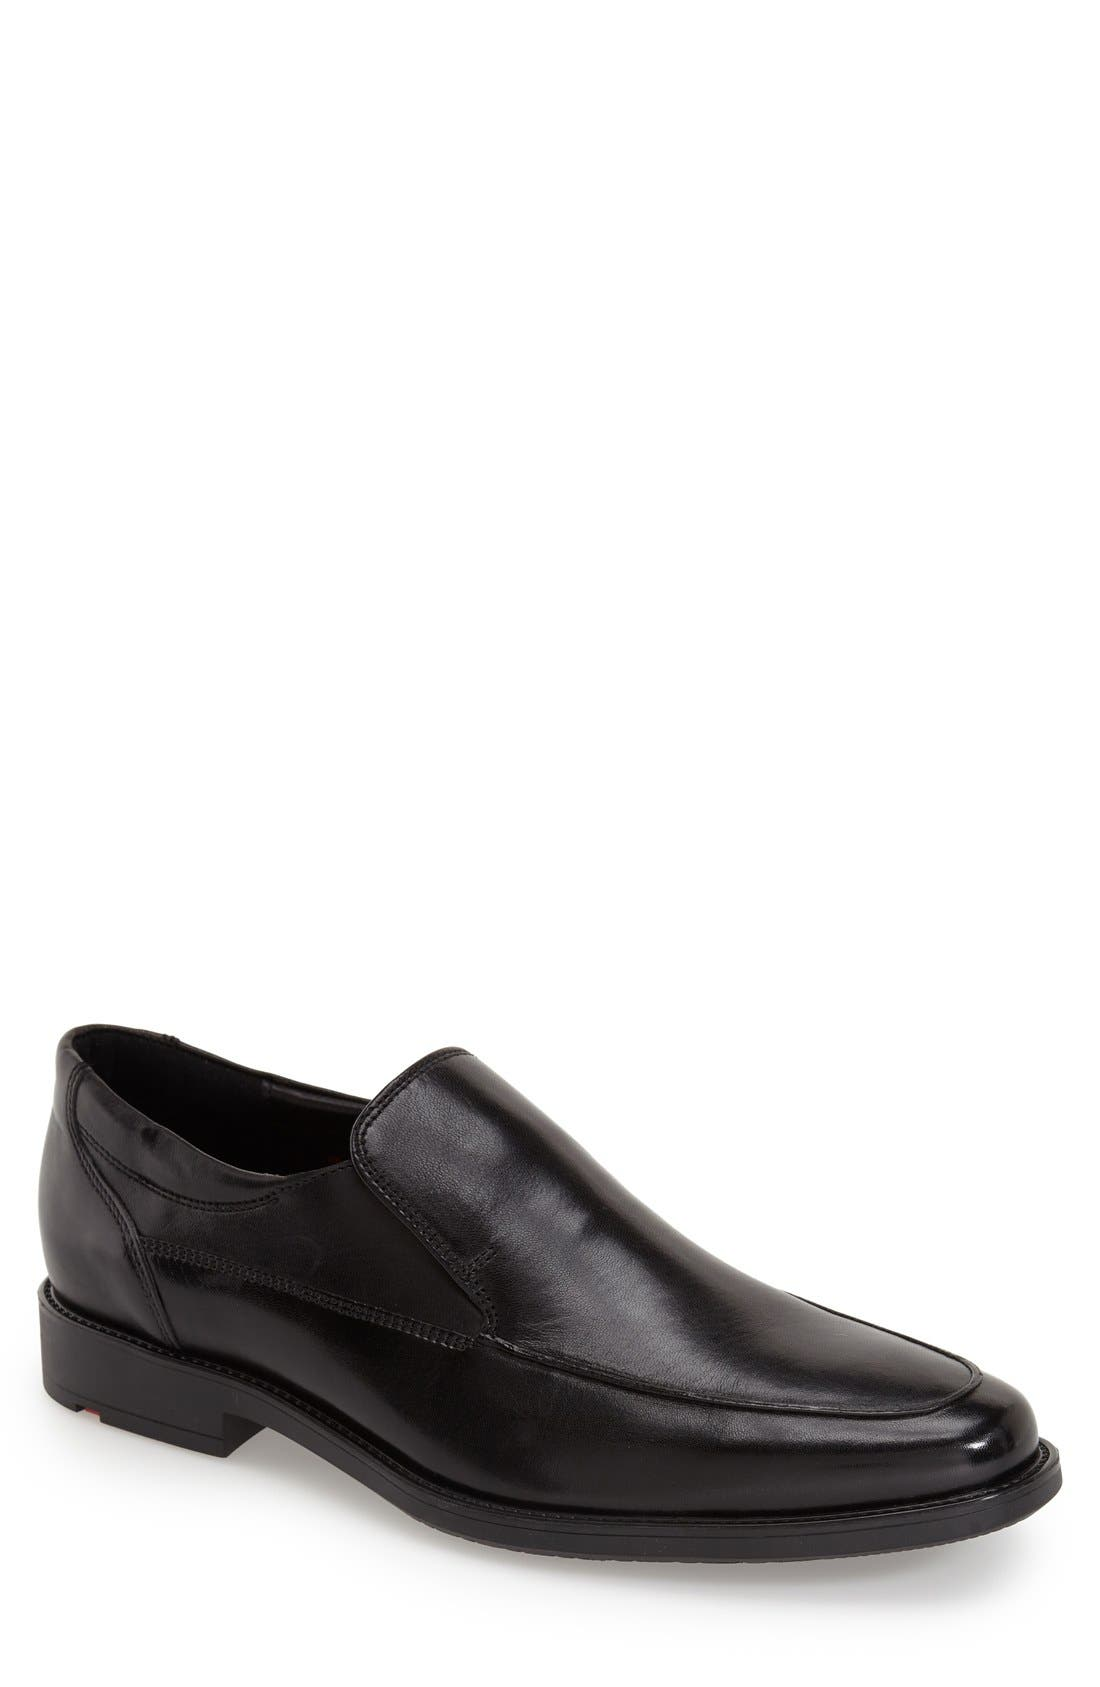 Lloyd 'Nante' Venetian Loafer (Men)